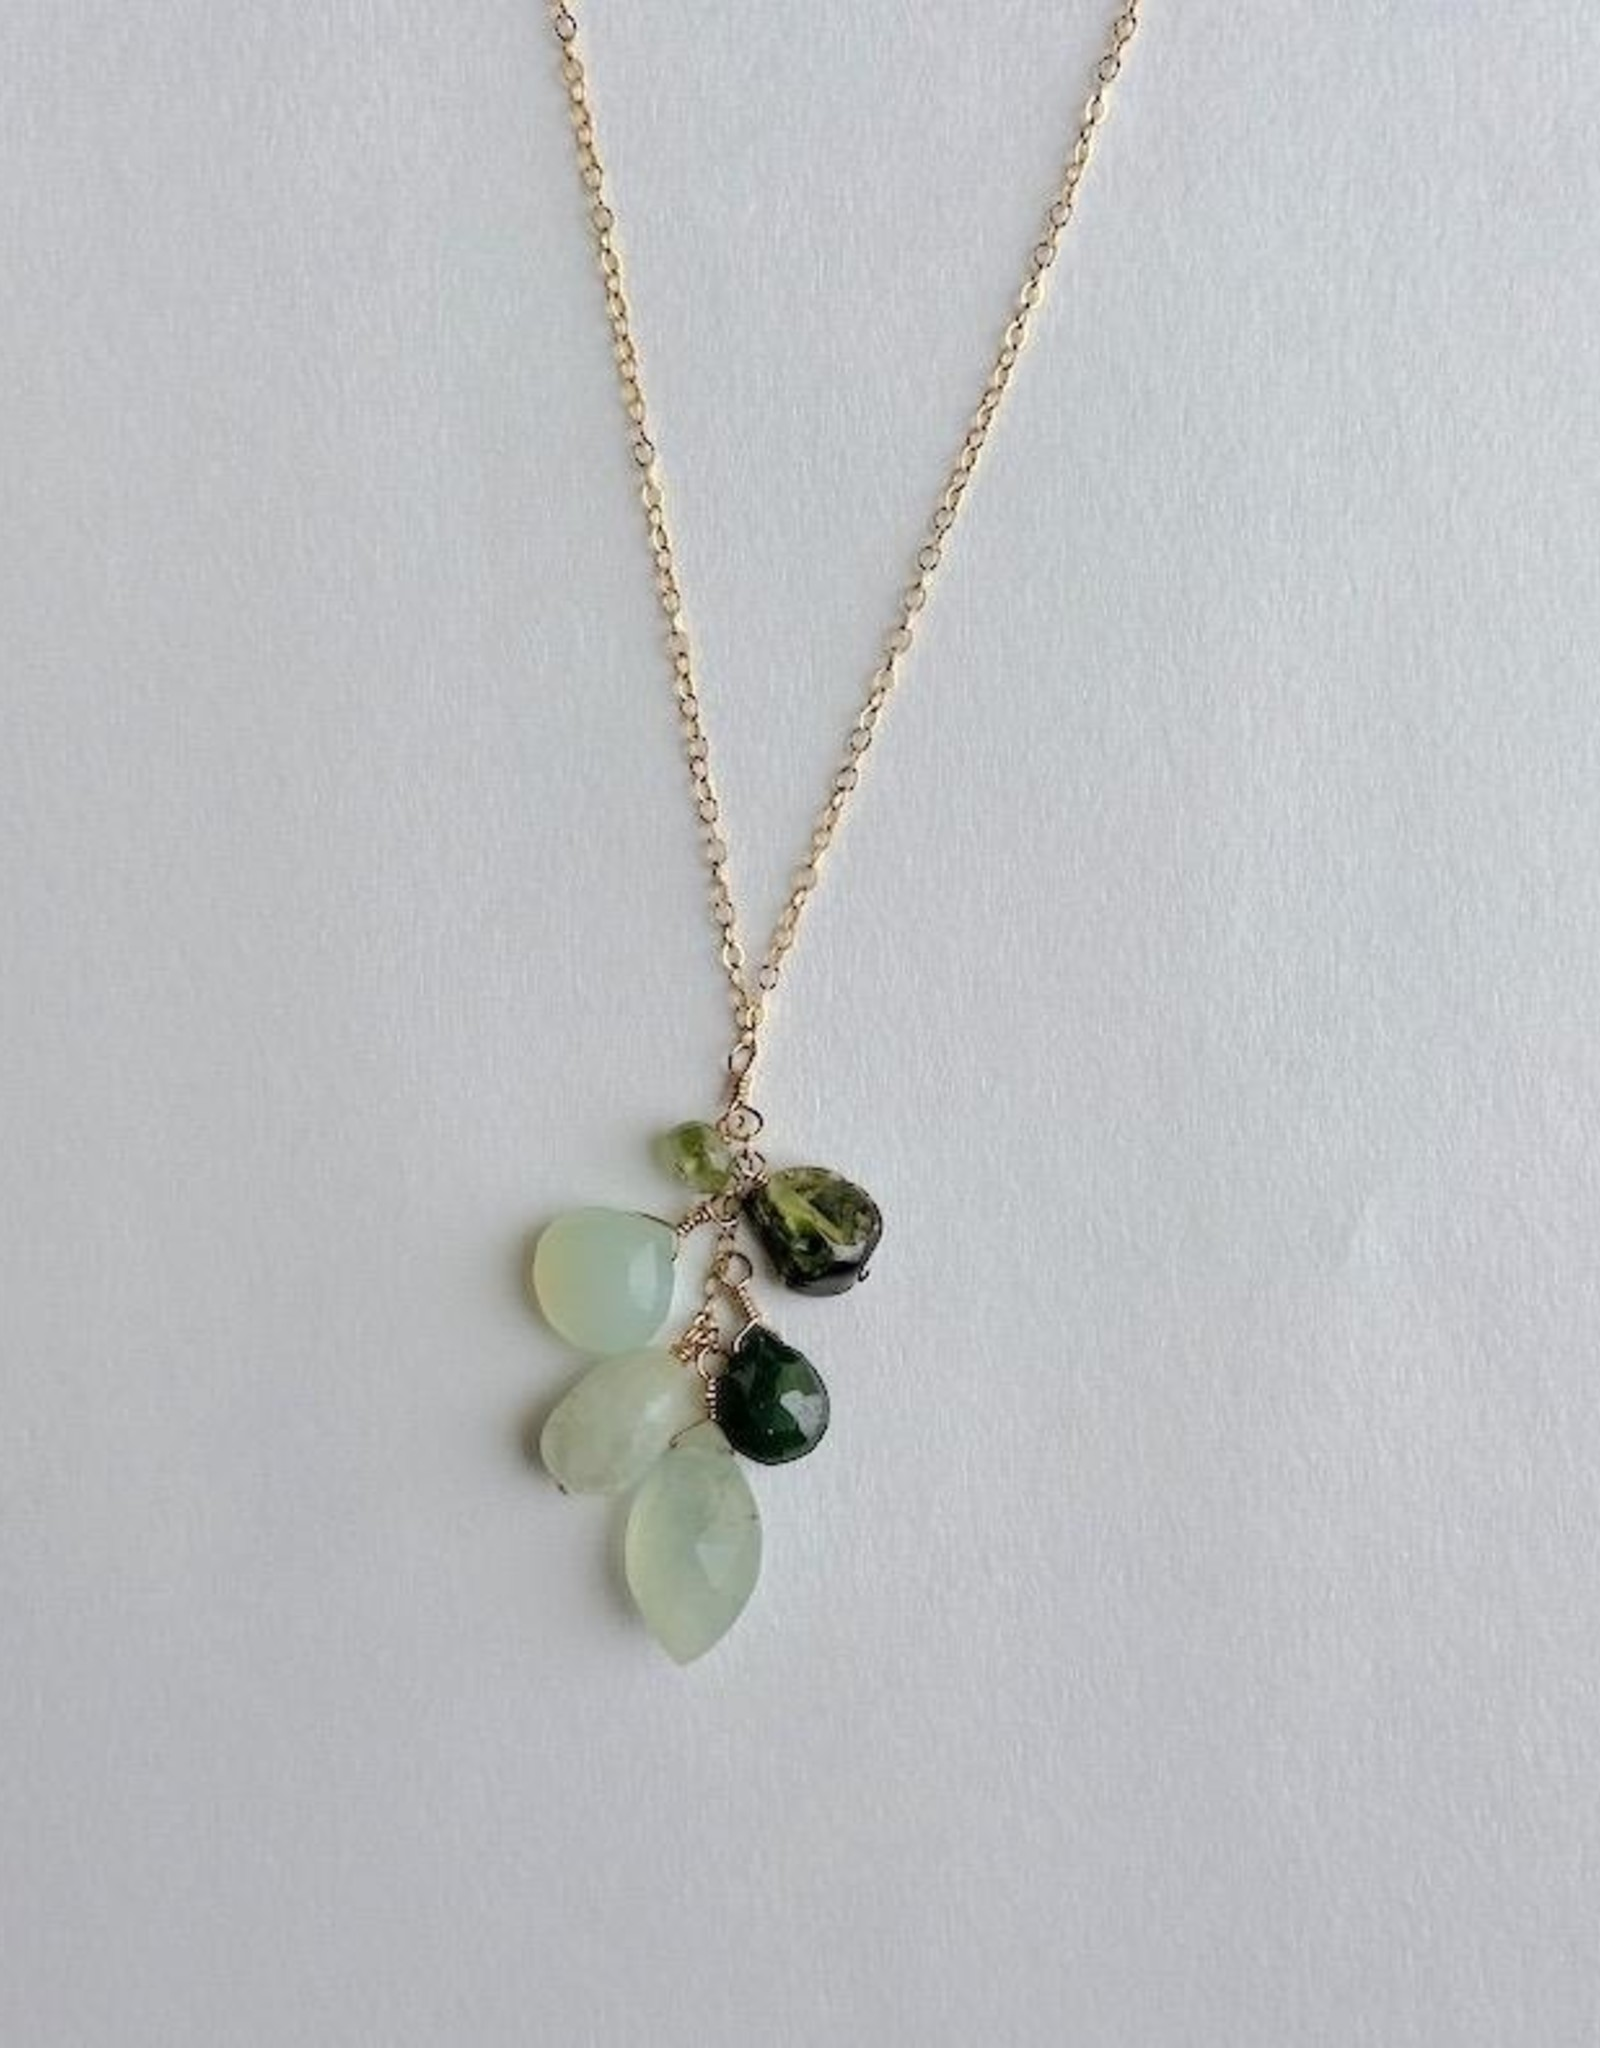 "Handmade 14K Goldfill 24"" Necklace with Cascade of Prehnite and Emerald Stones"